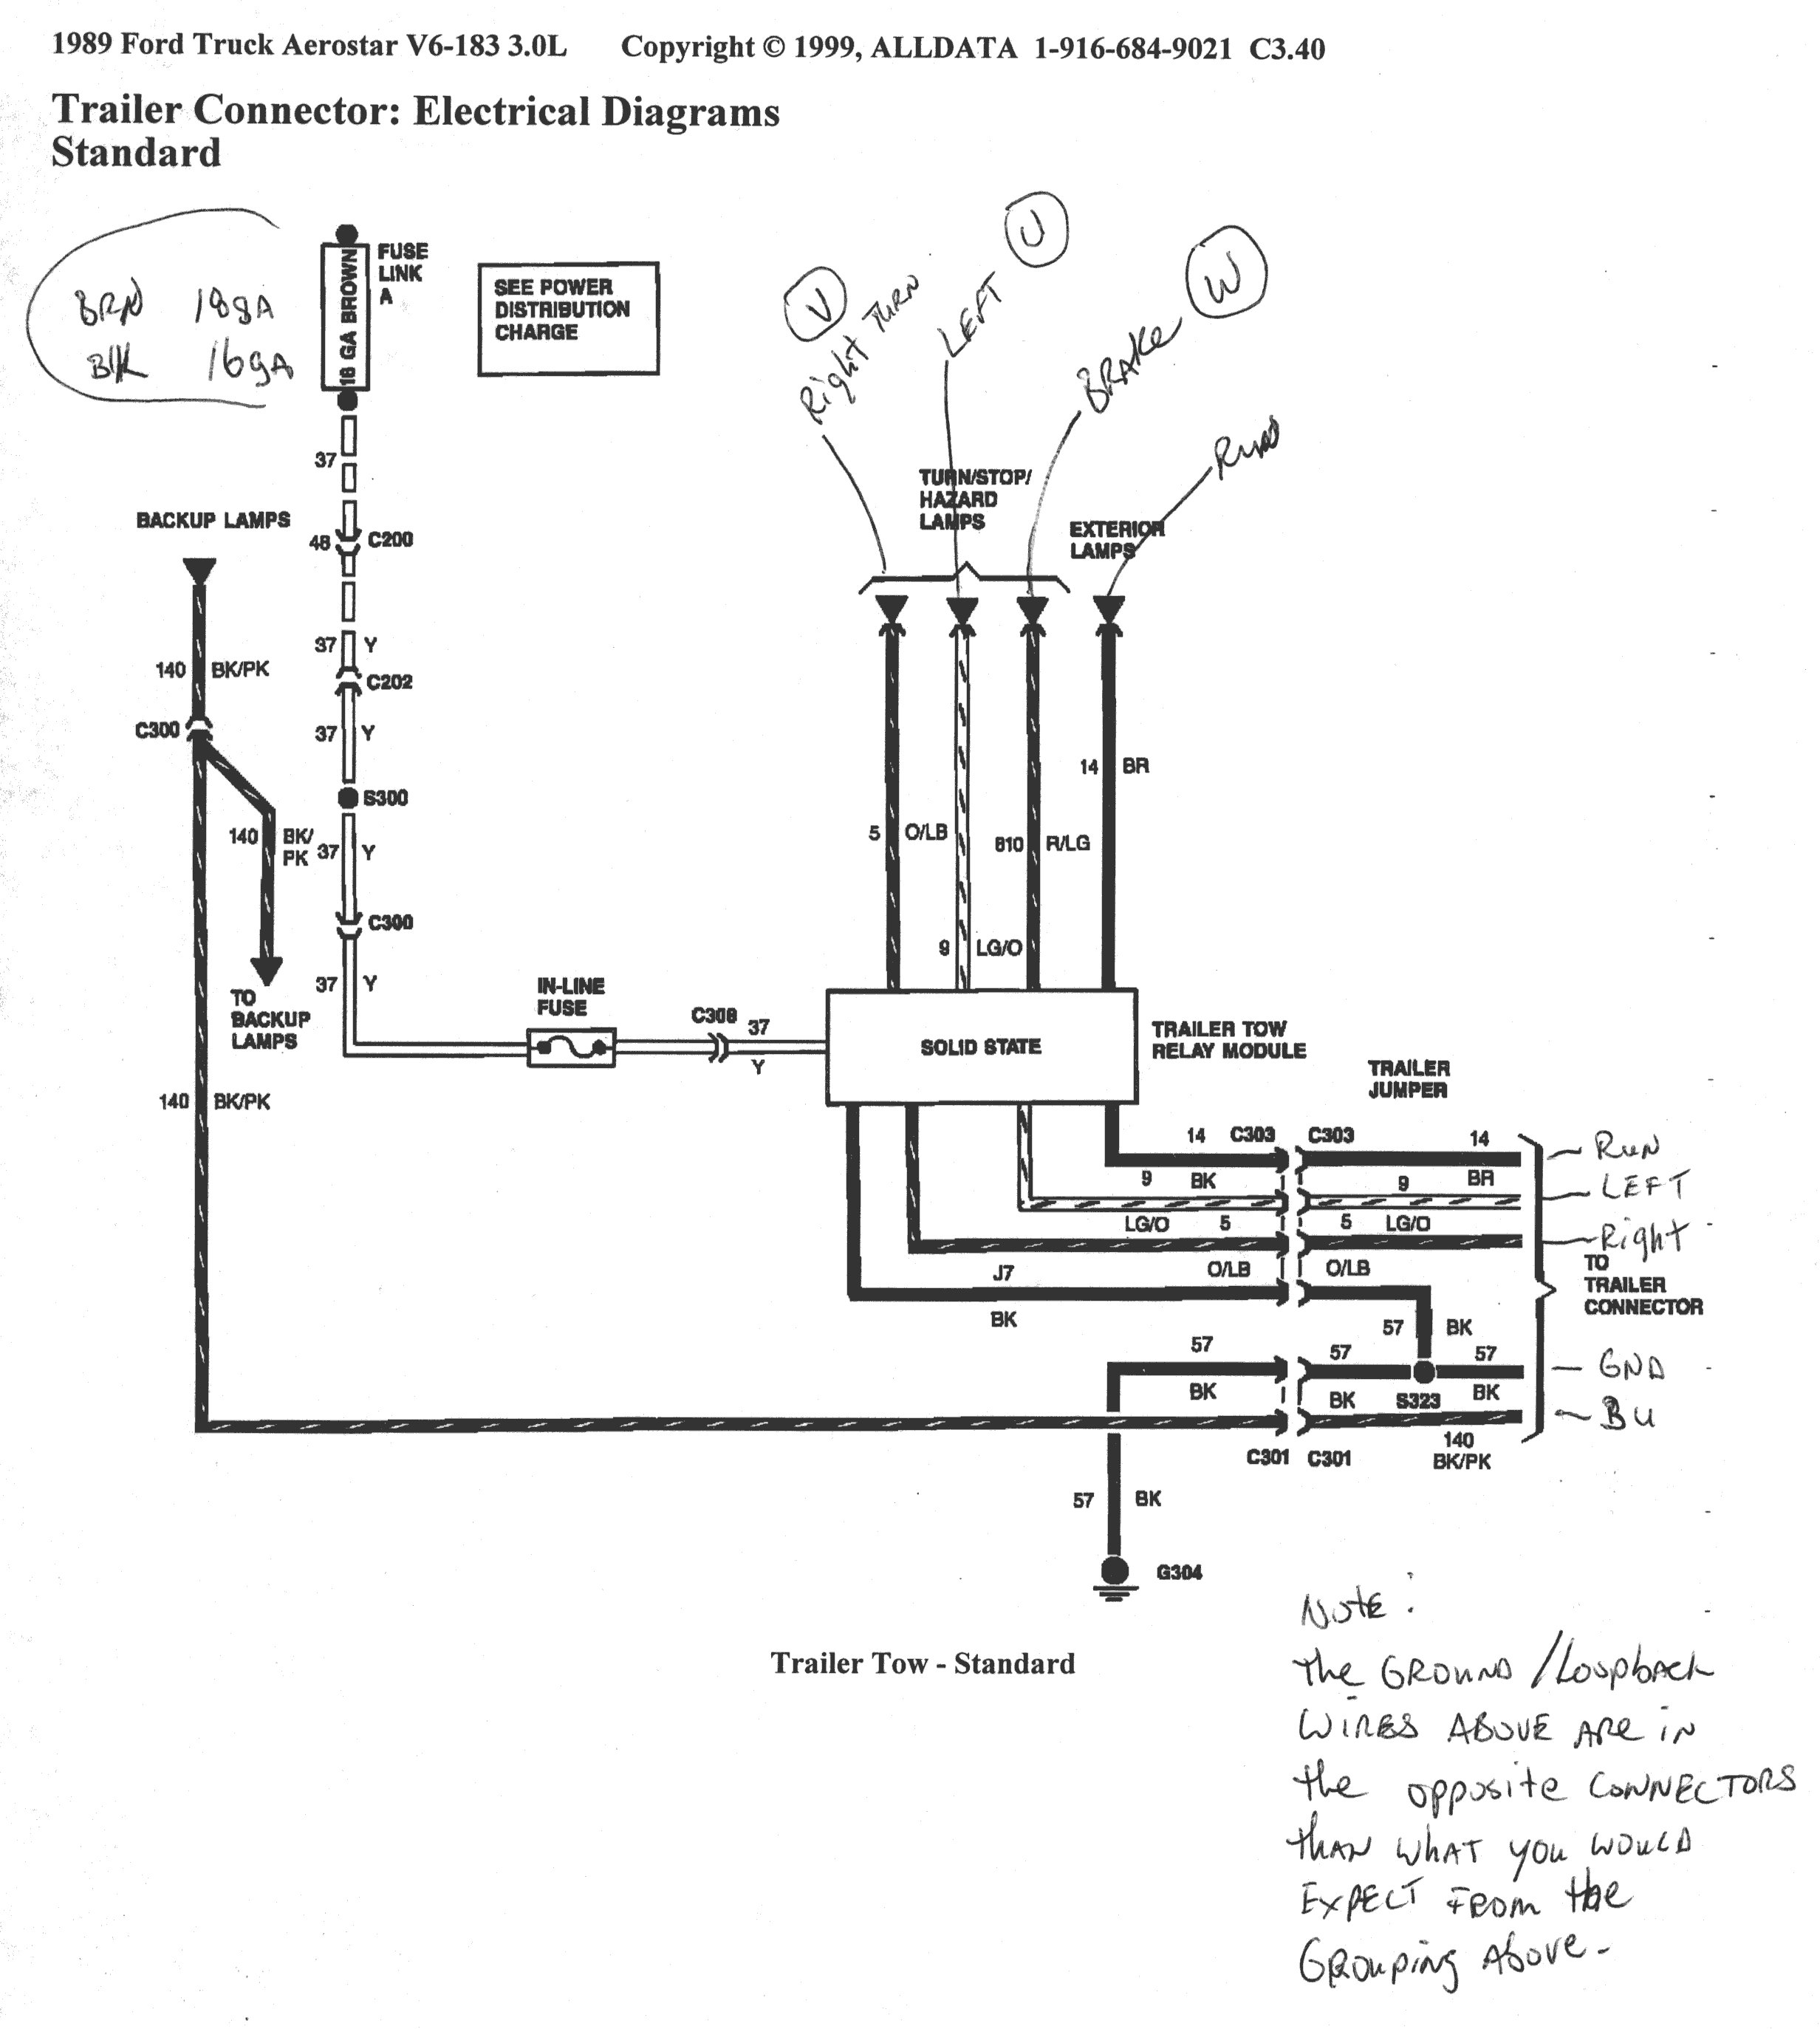 Trailer Wiring Harness Drawing - wiring diagram oline for ... on